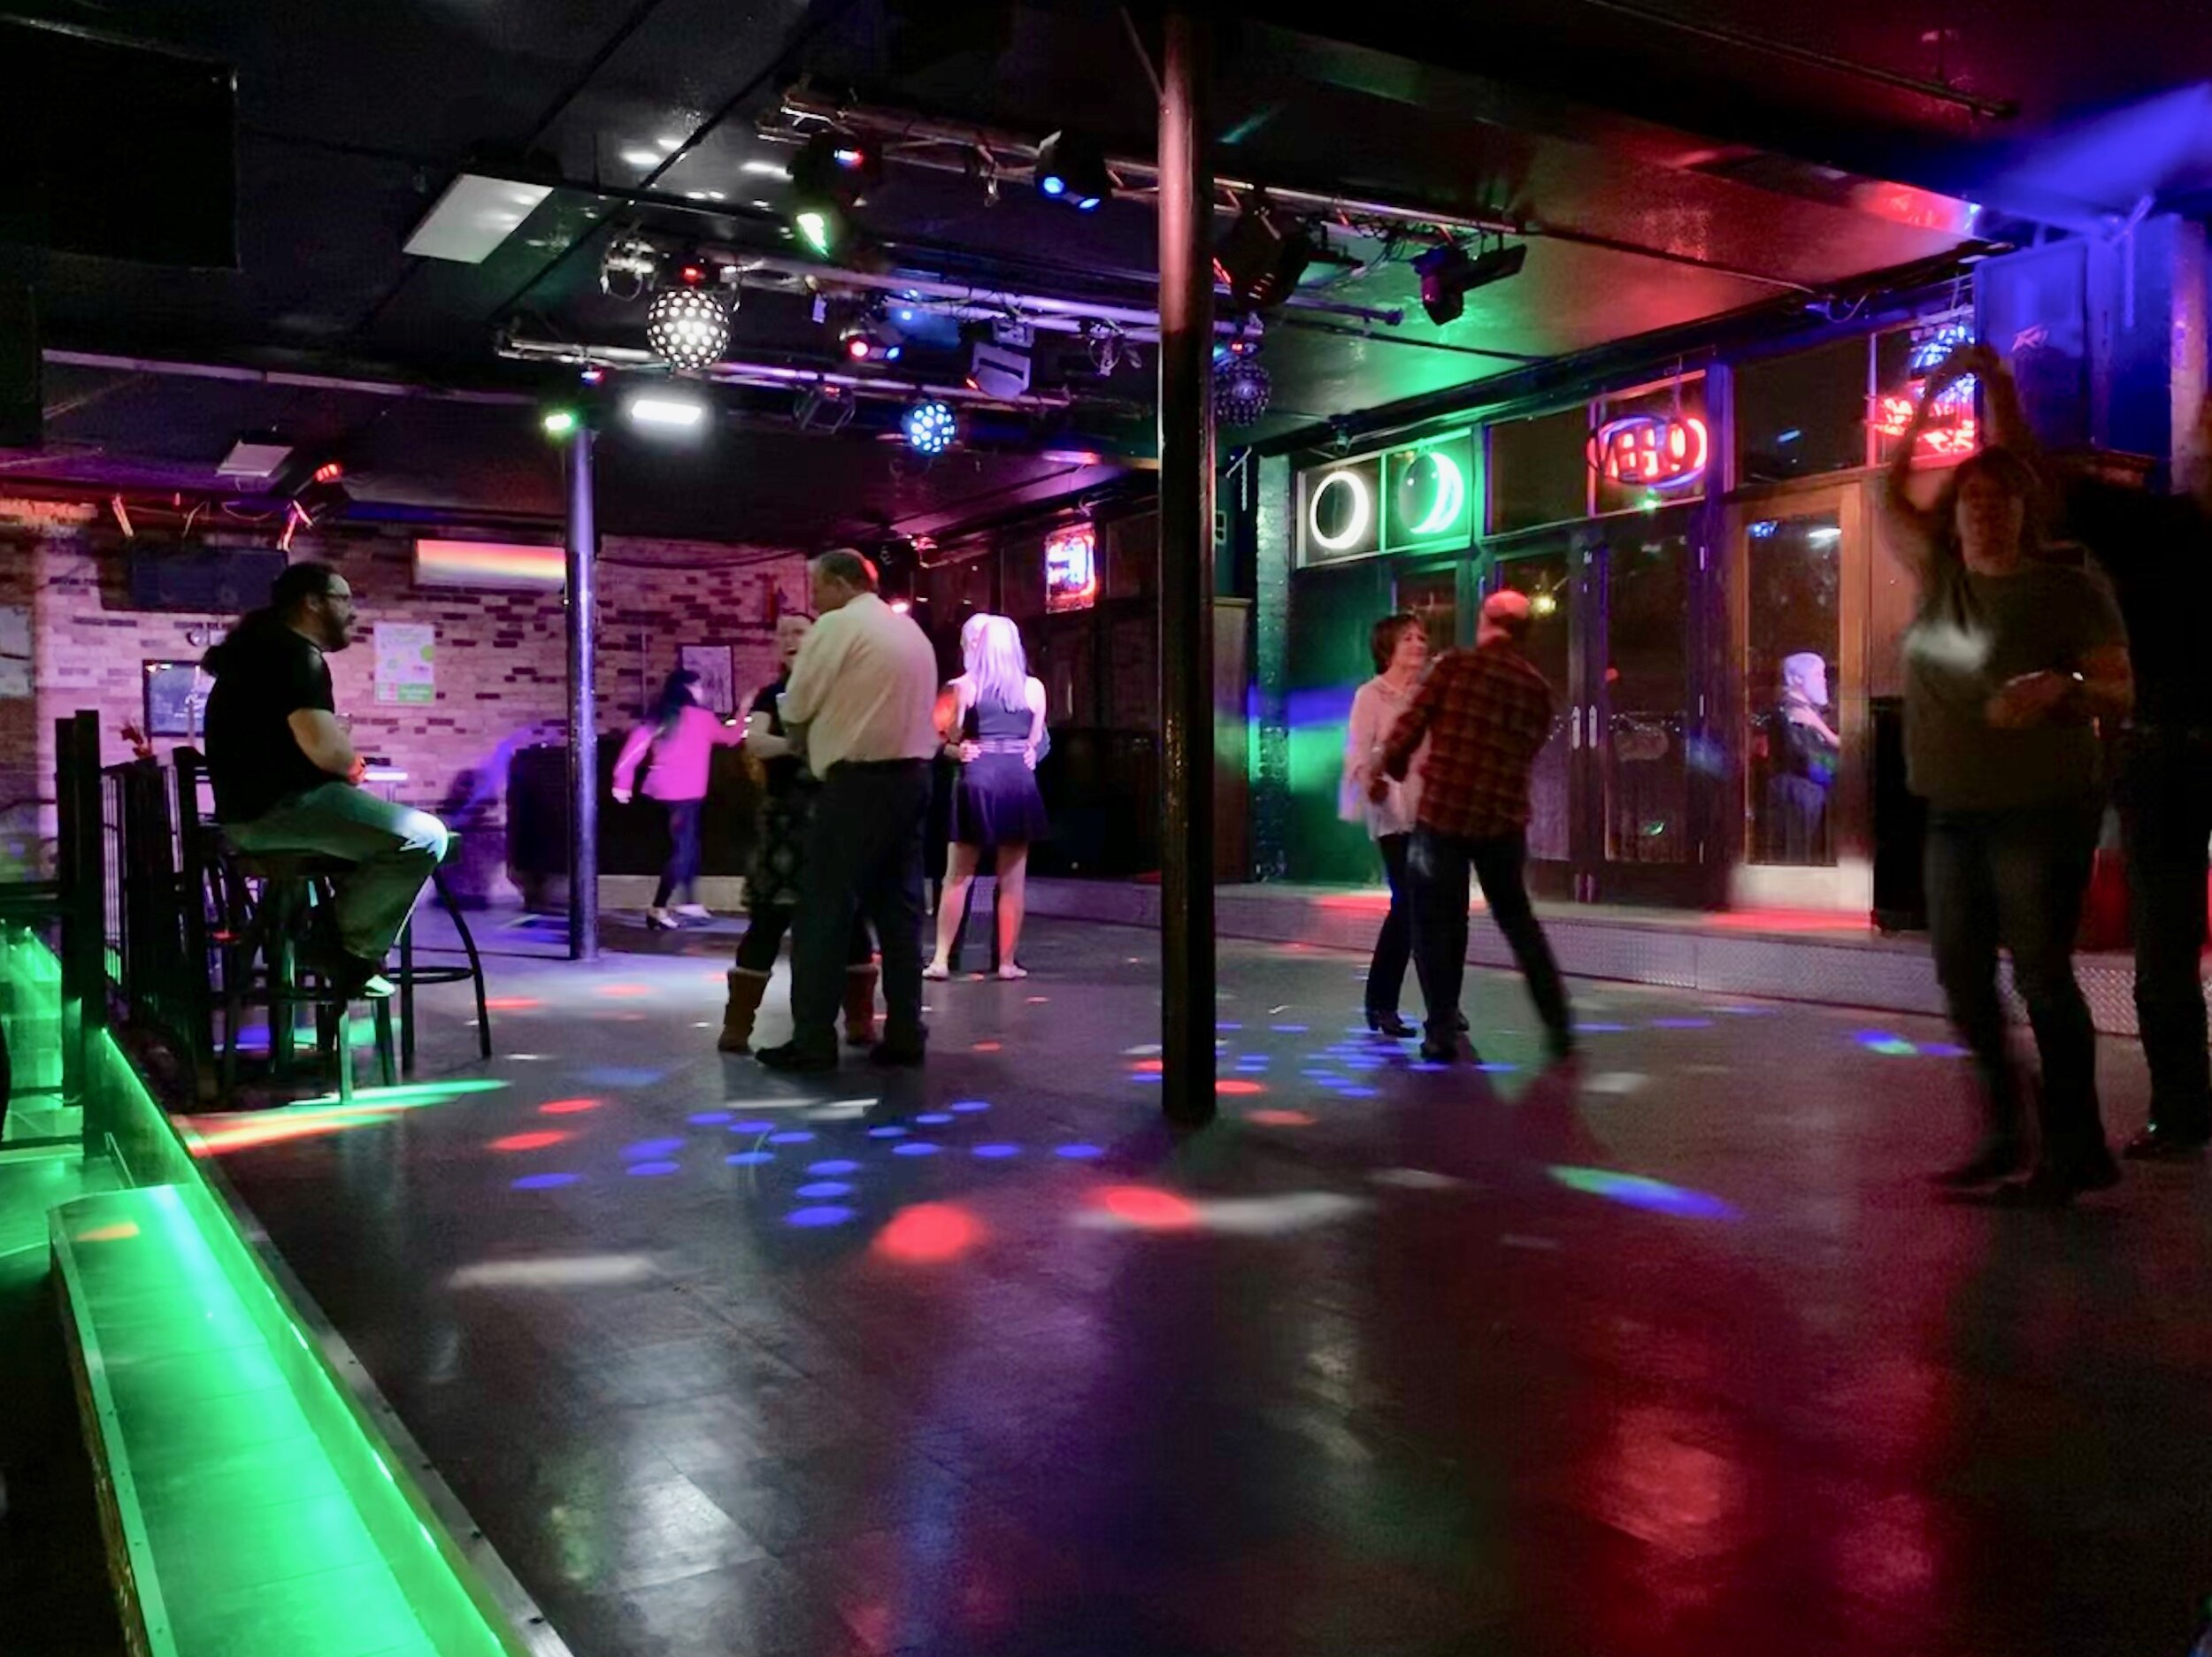 Community members come out every second and fourth Tuesday of each month to swing and line dance at The Flame nightclub. Photo courtesy of Tyra Jaramillo, who accompanied me.